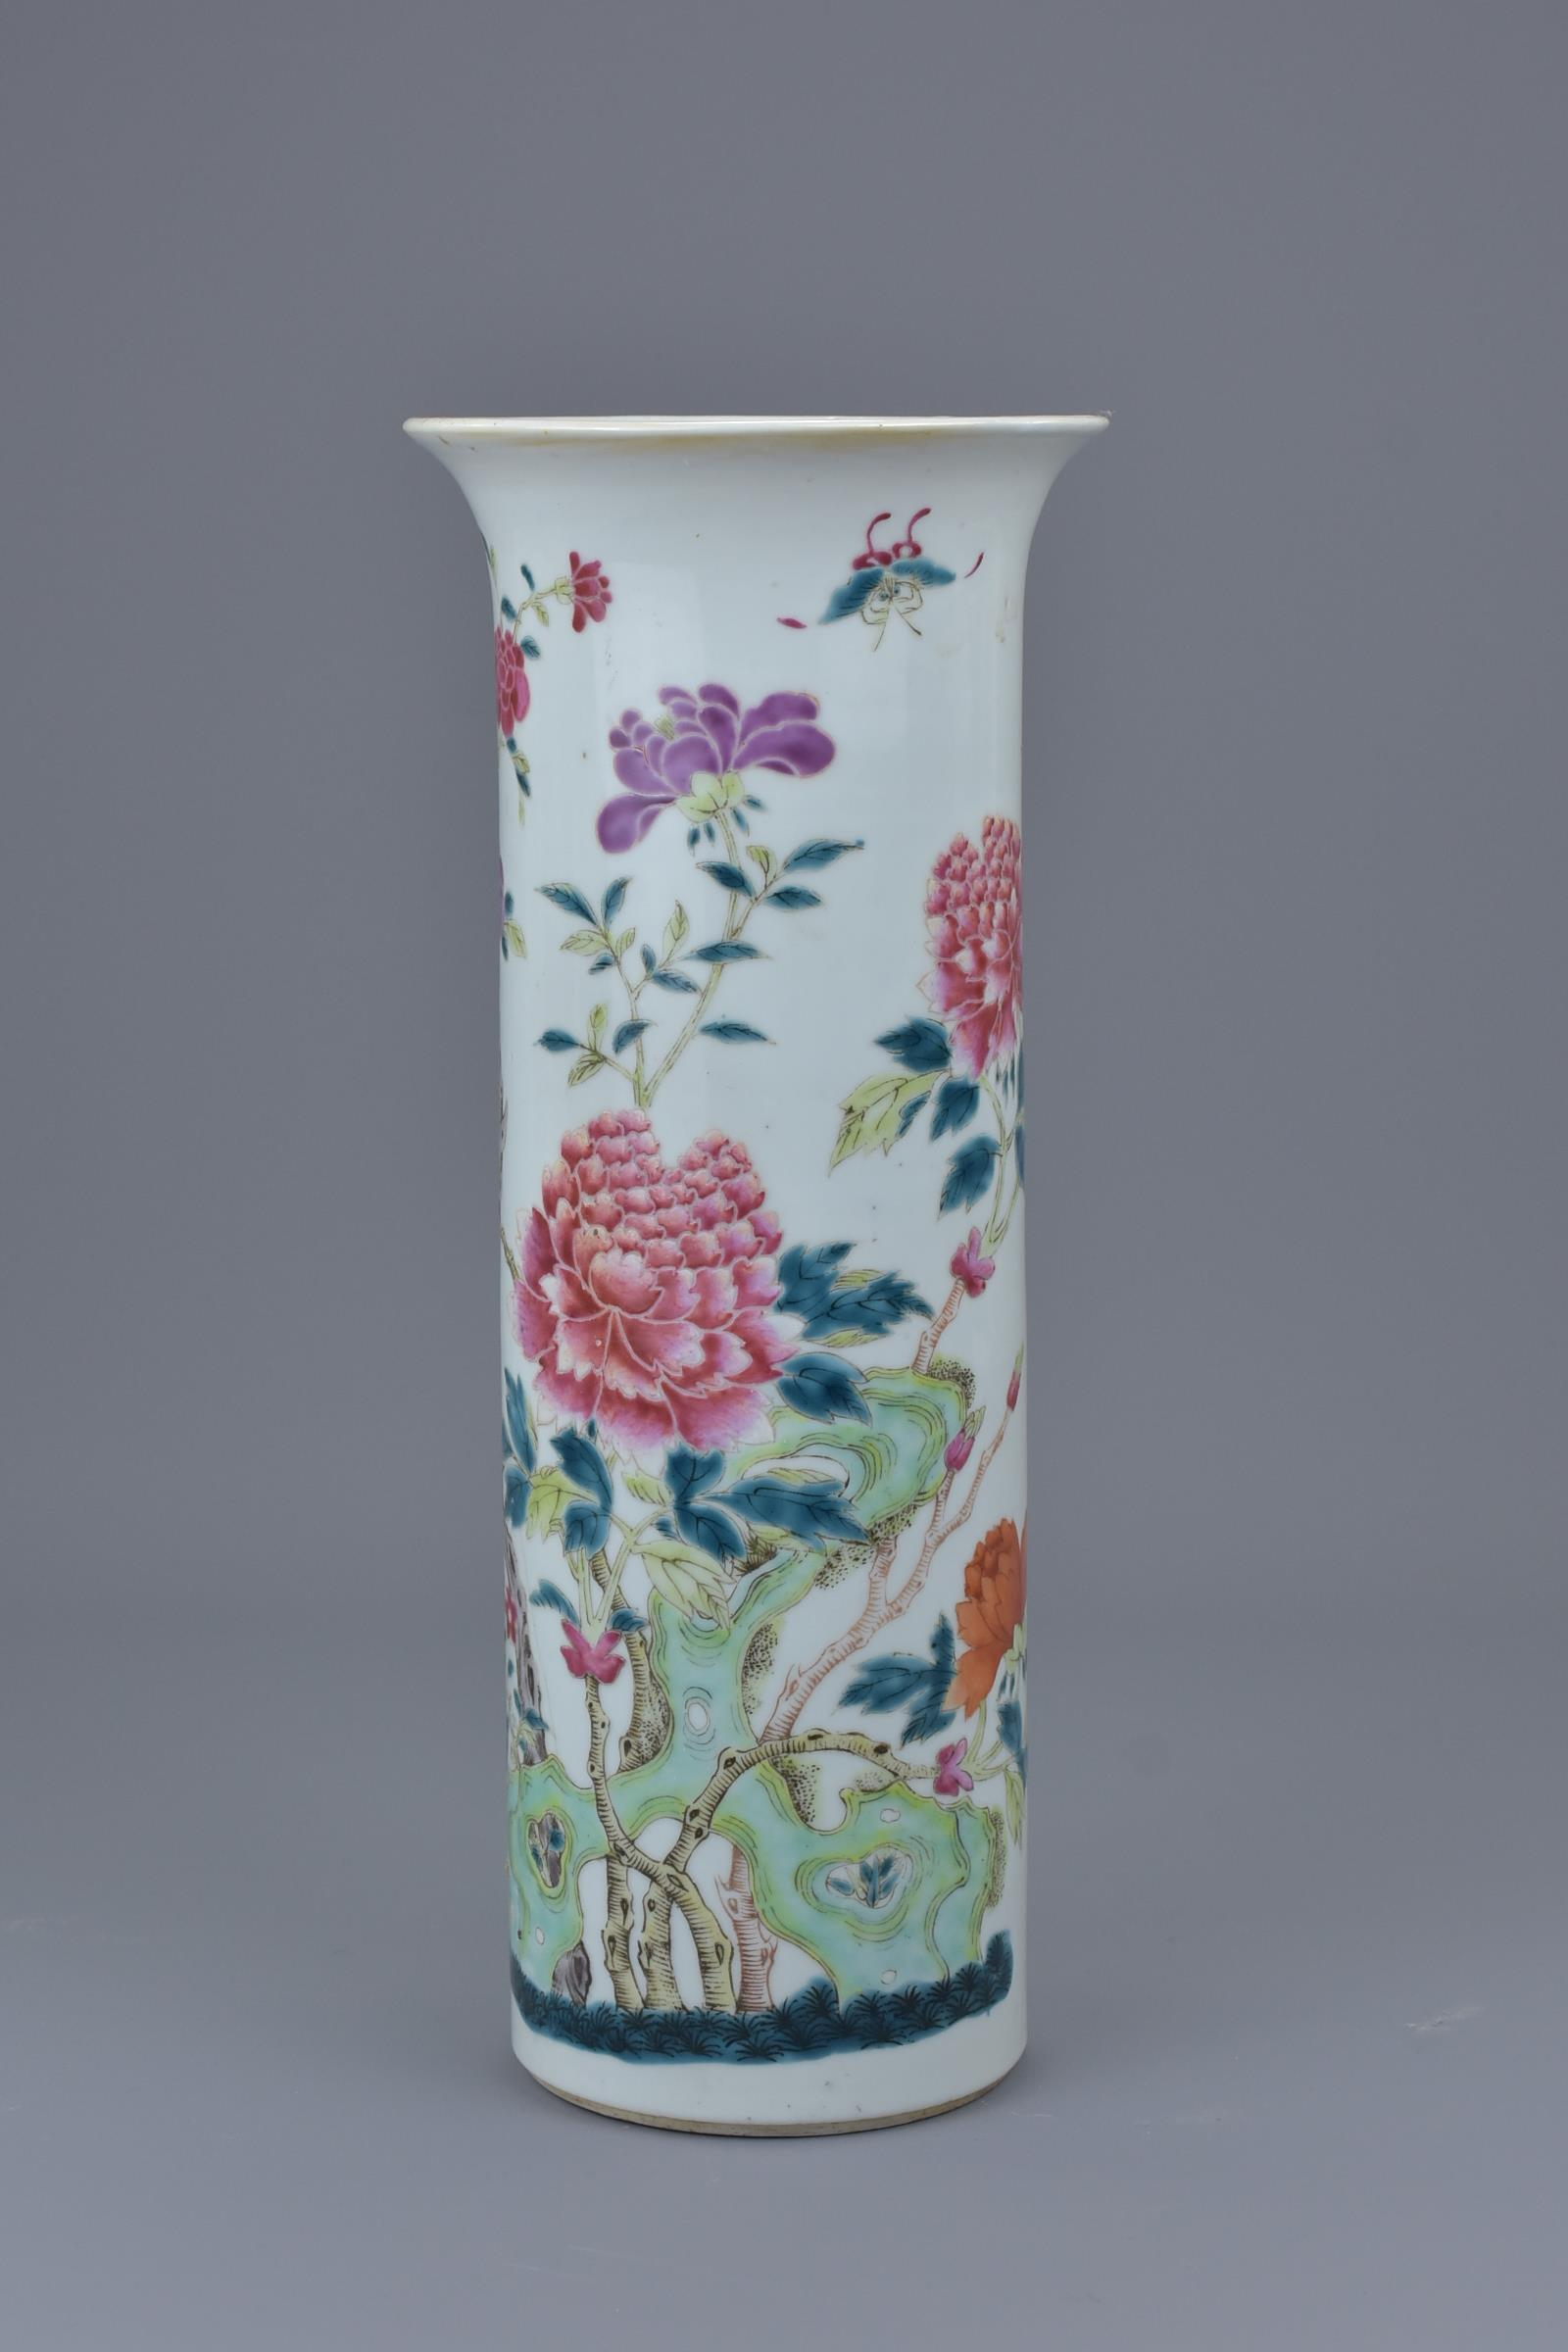 Lot 10 - A Chinese 19th C. Famille rose porcelain sleeve vase